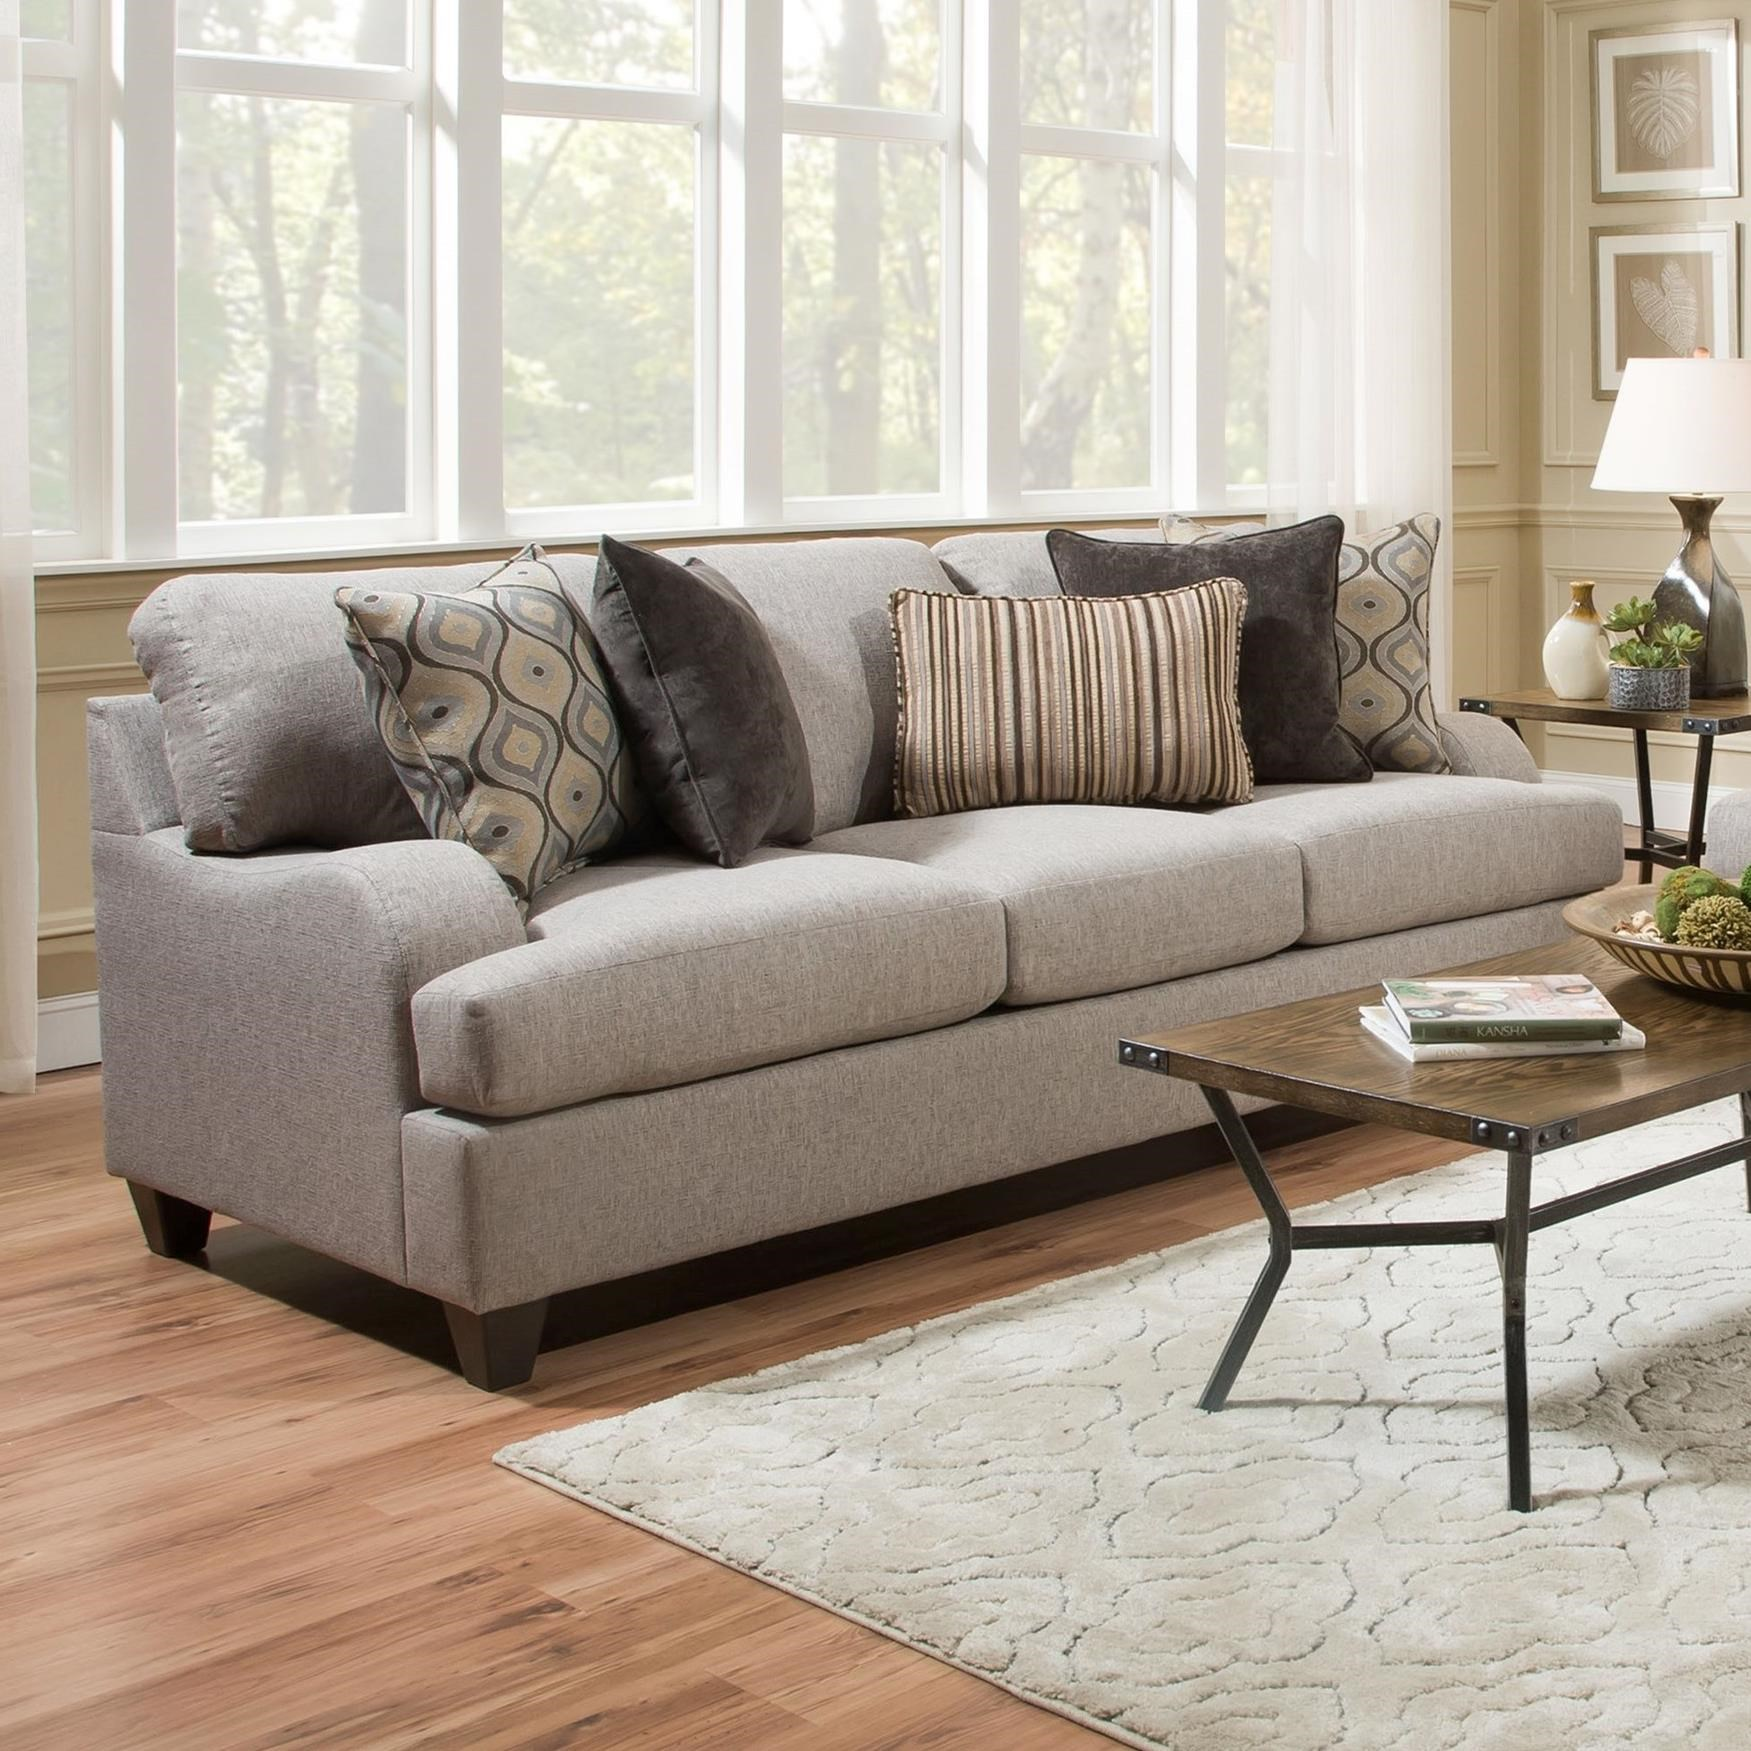 transitional style sectional sofas dark grey sofa room ideas united furniture industries 4002 4002sofa